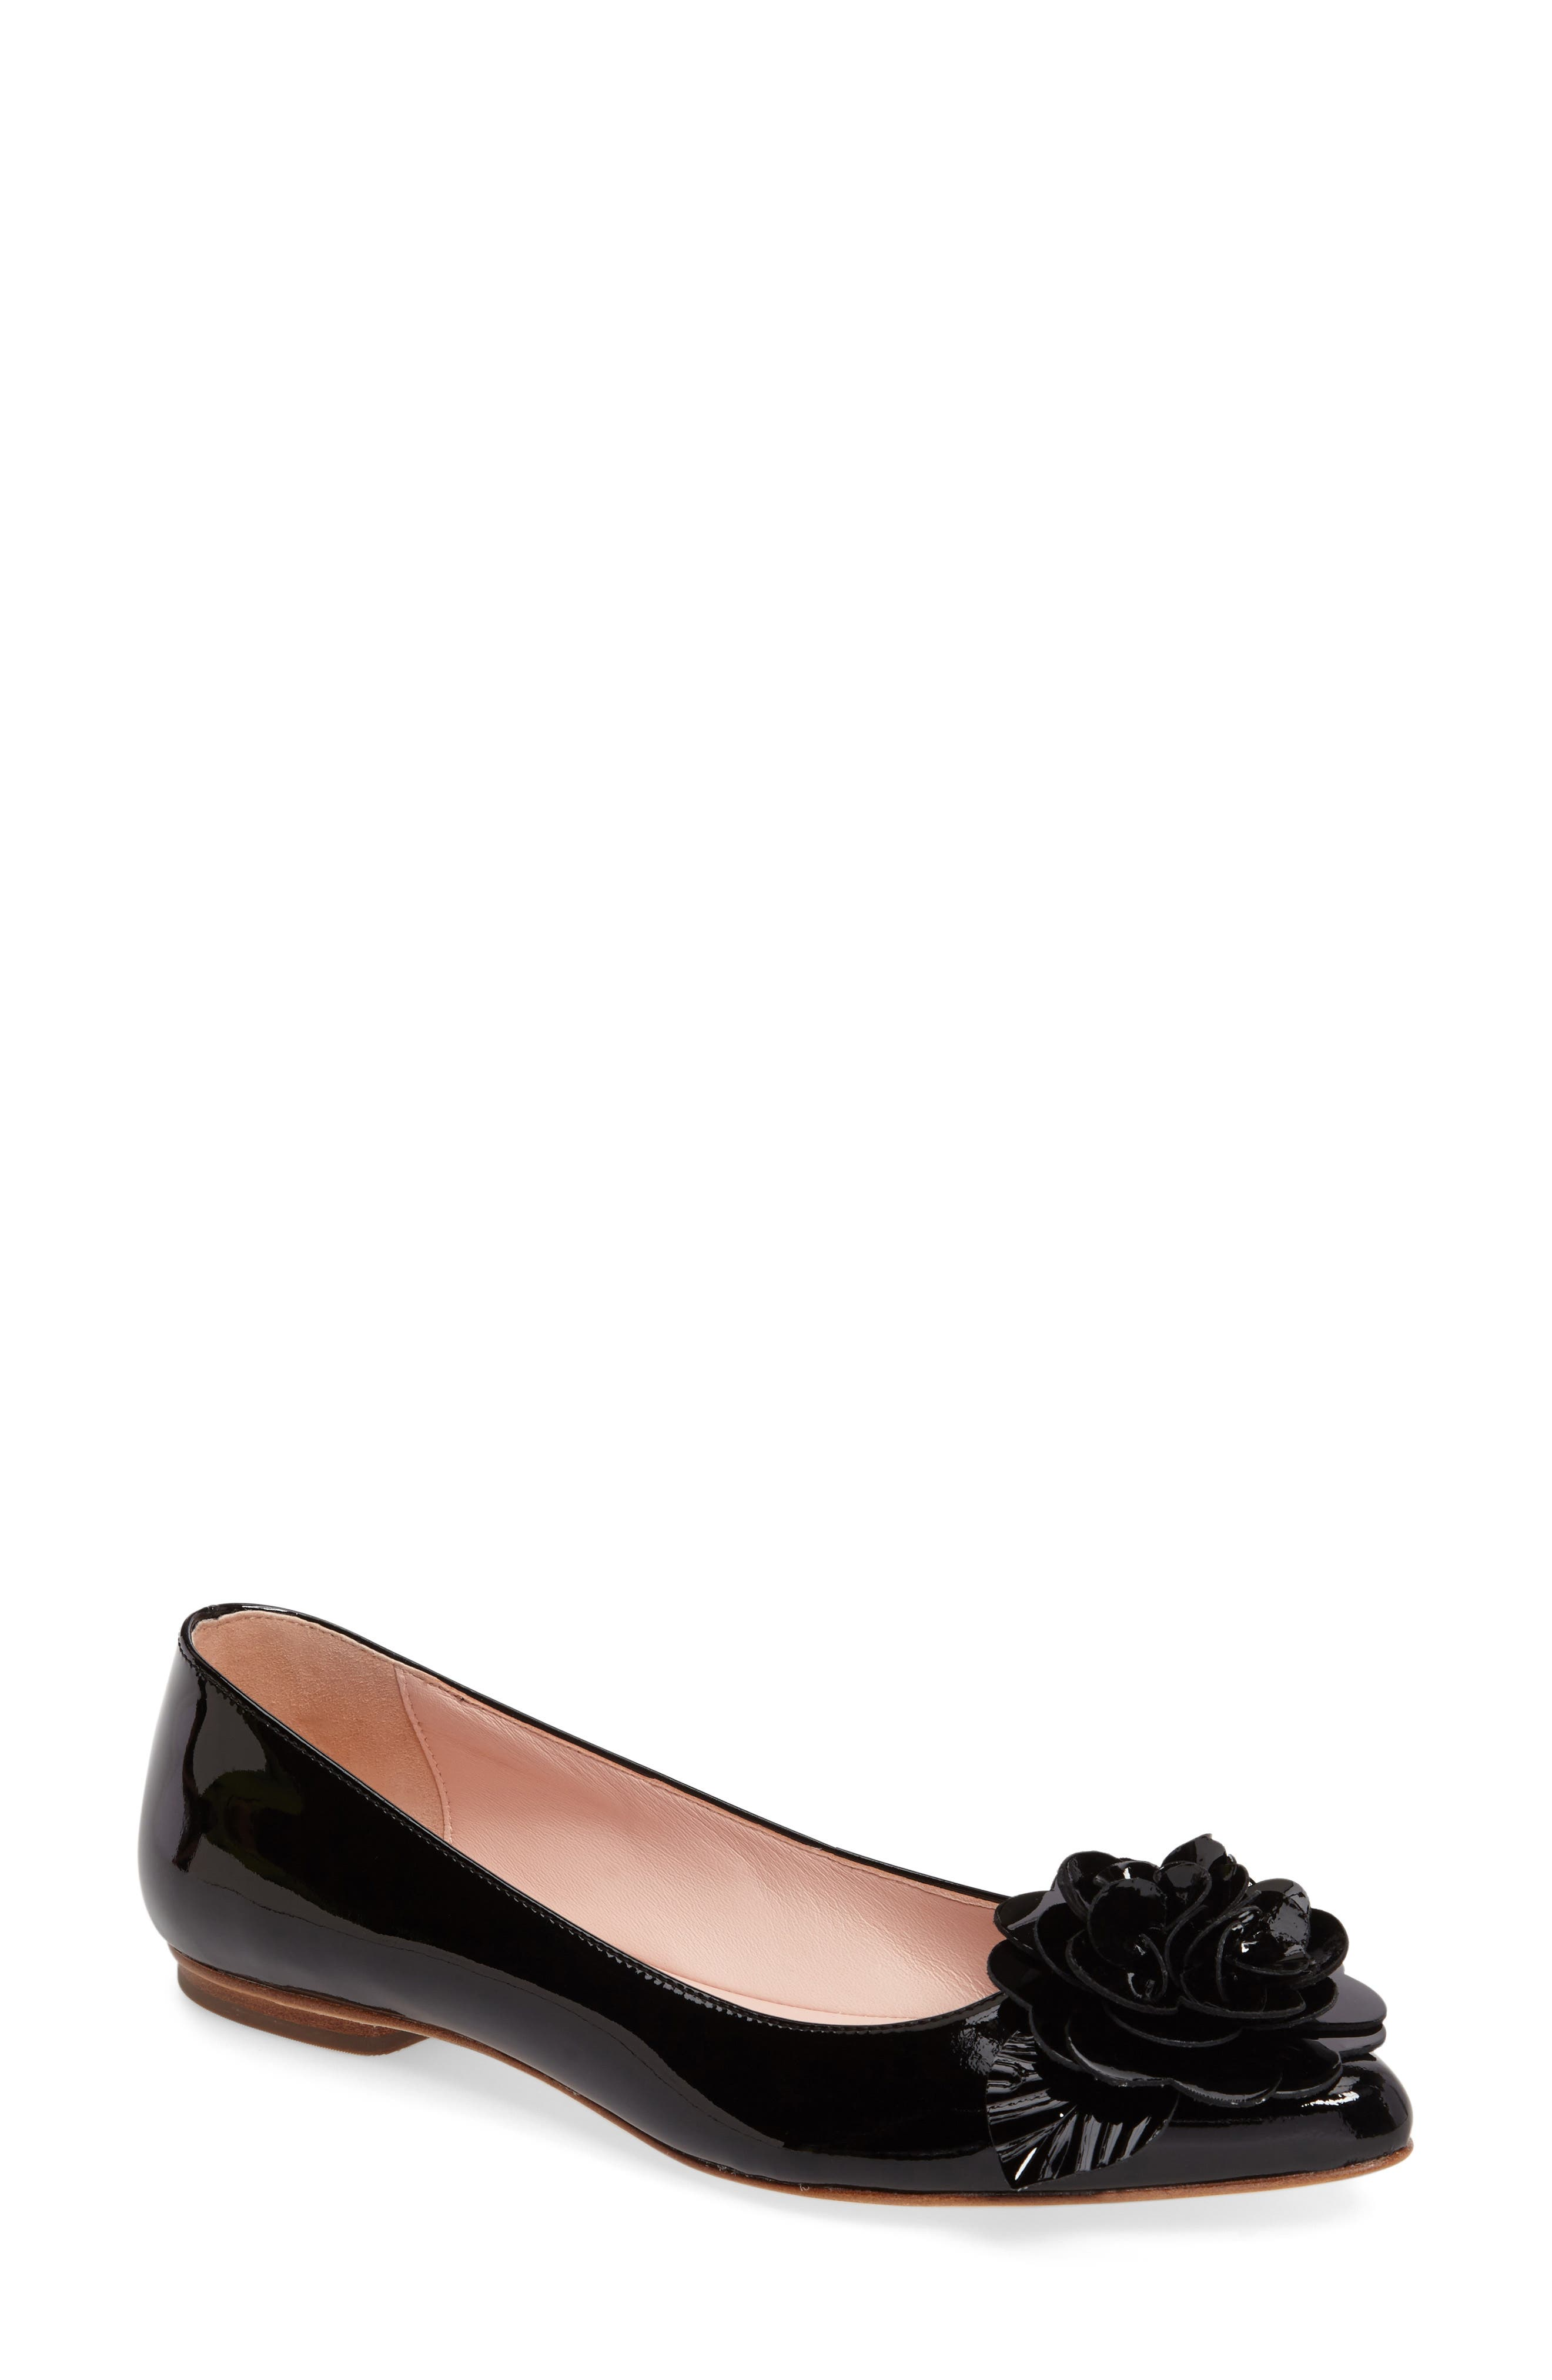 ellie pointy toe flat,                         Main,                         color, Black Patent